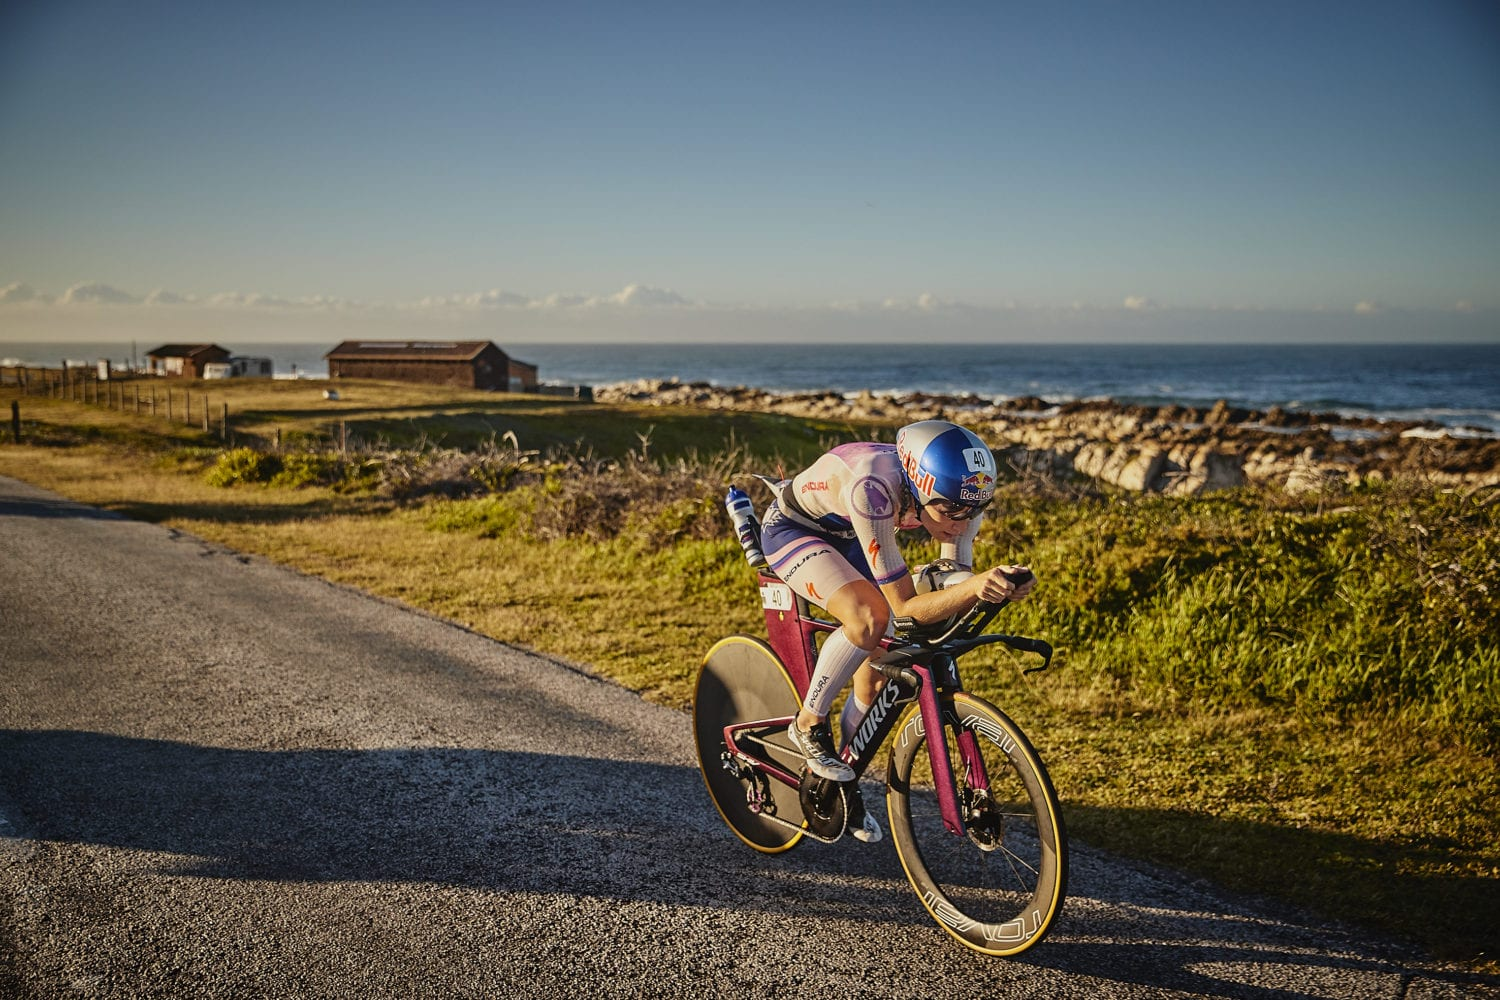 Wahoo Announce Official Partnership with British triathlete Lucy Charles-Barclay